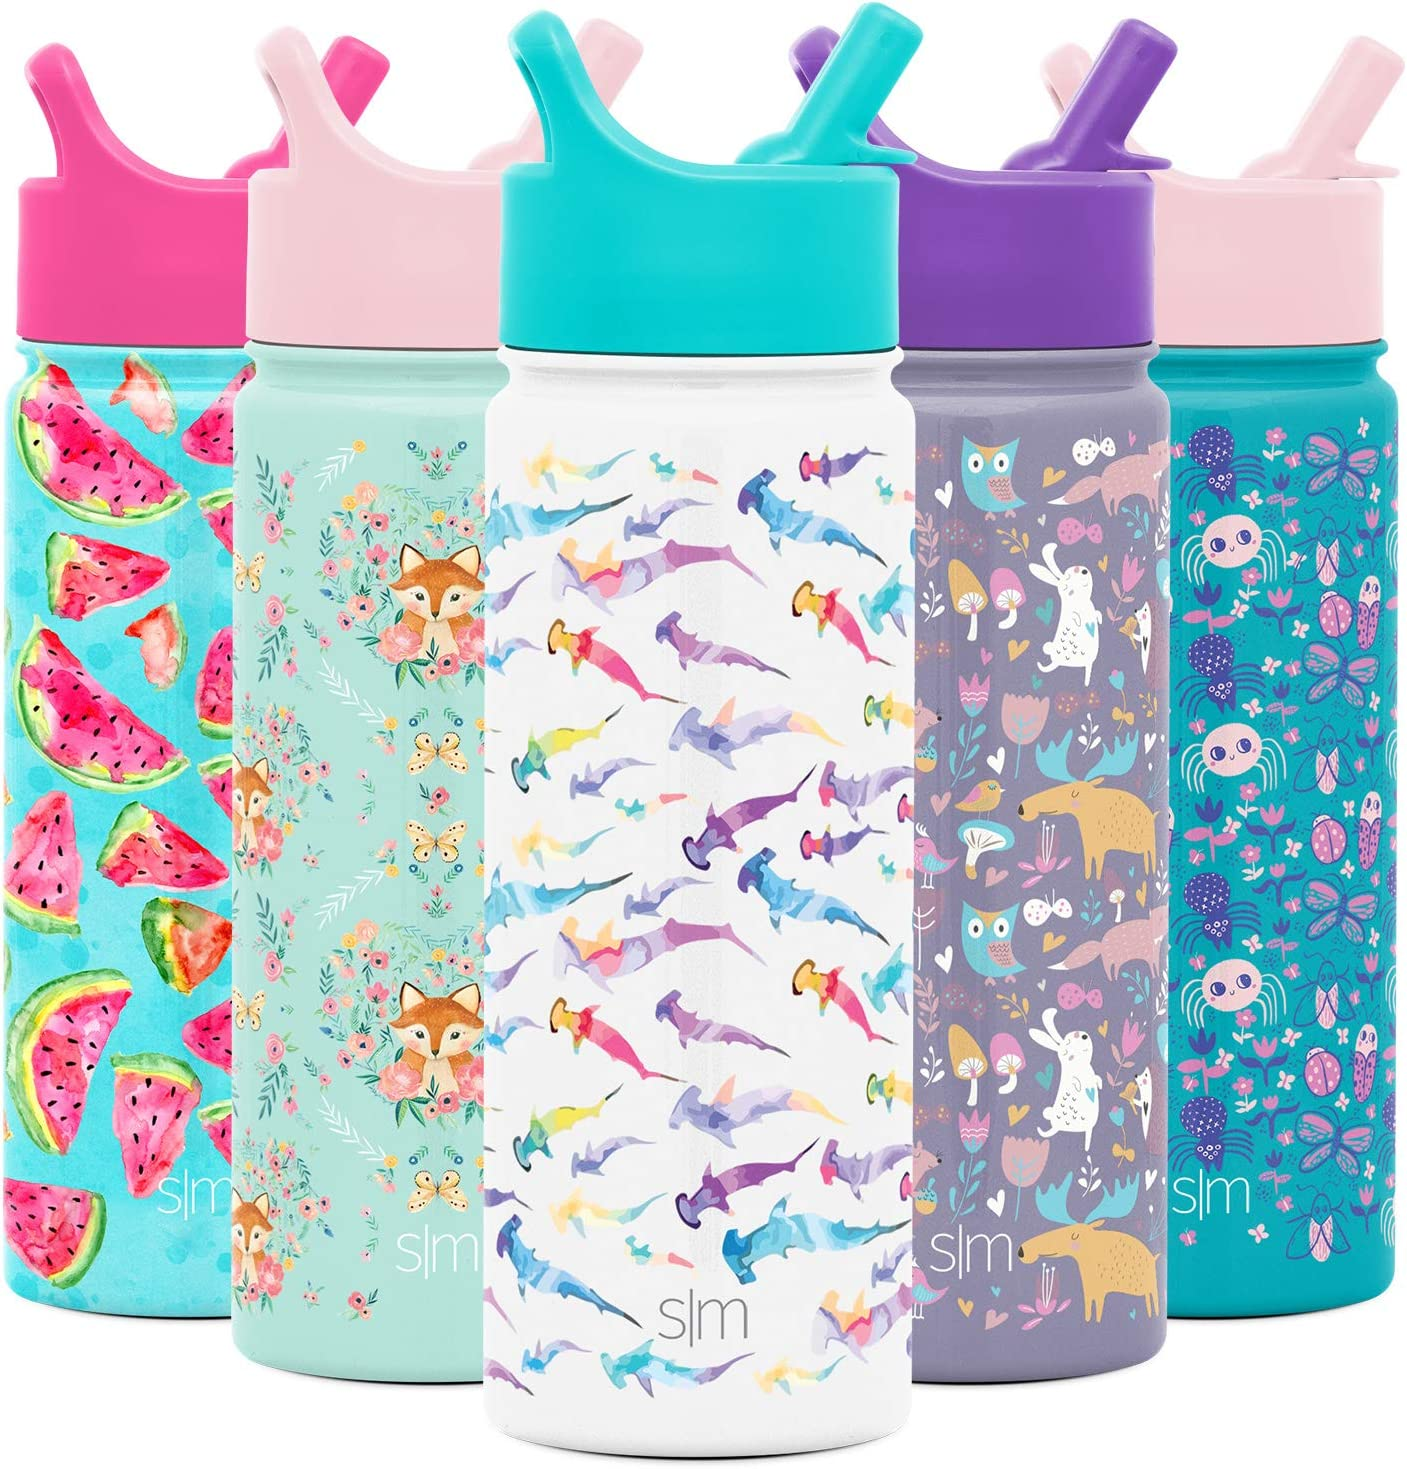 Simple Modern 18oz Summit Kids Water Bottle Thermos with Straw Lid - Dishwasher Safe Vacuum Insulated Double Wall Tumbler Travel Cup 18/8 Stainless Steel -Watercolor Sharks